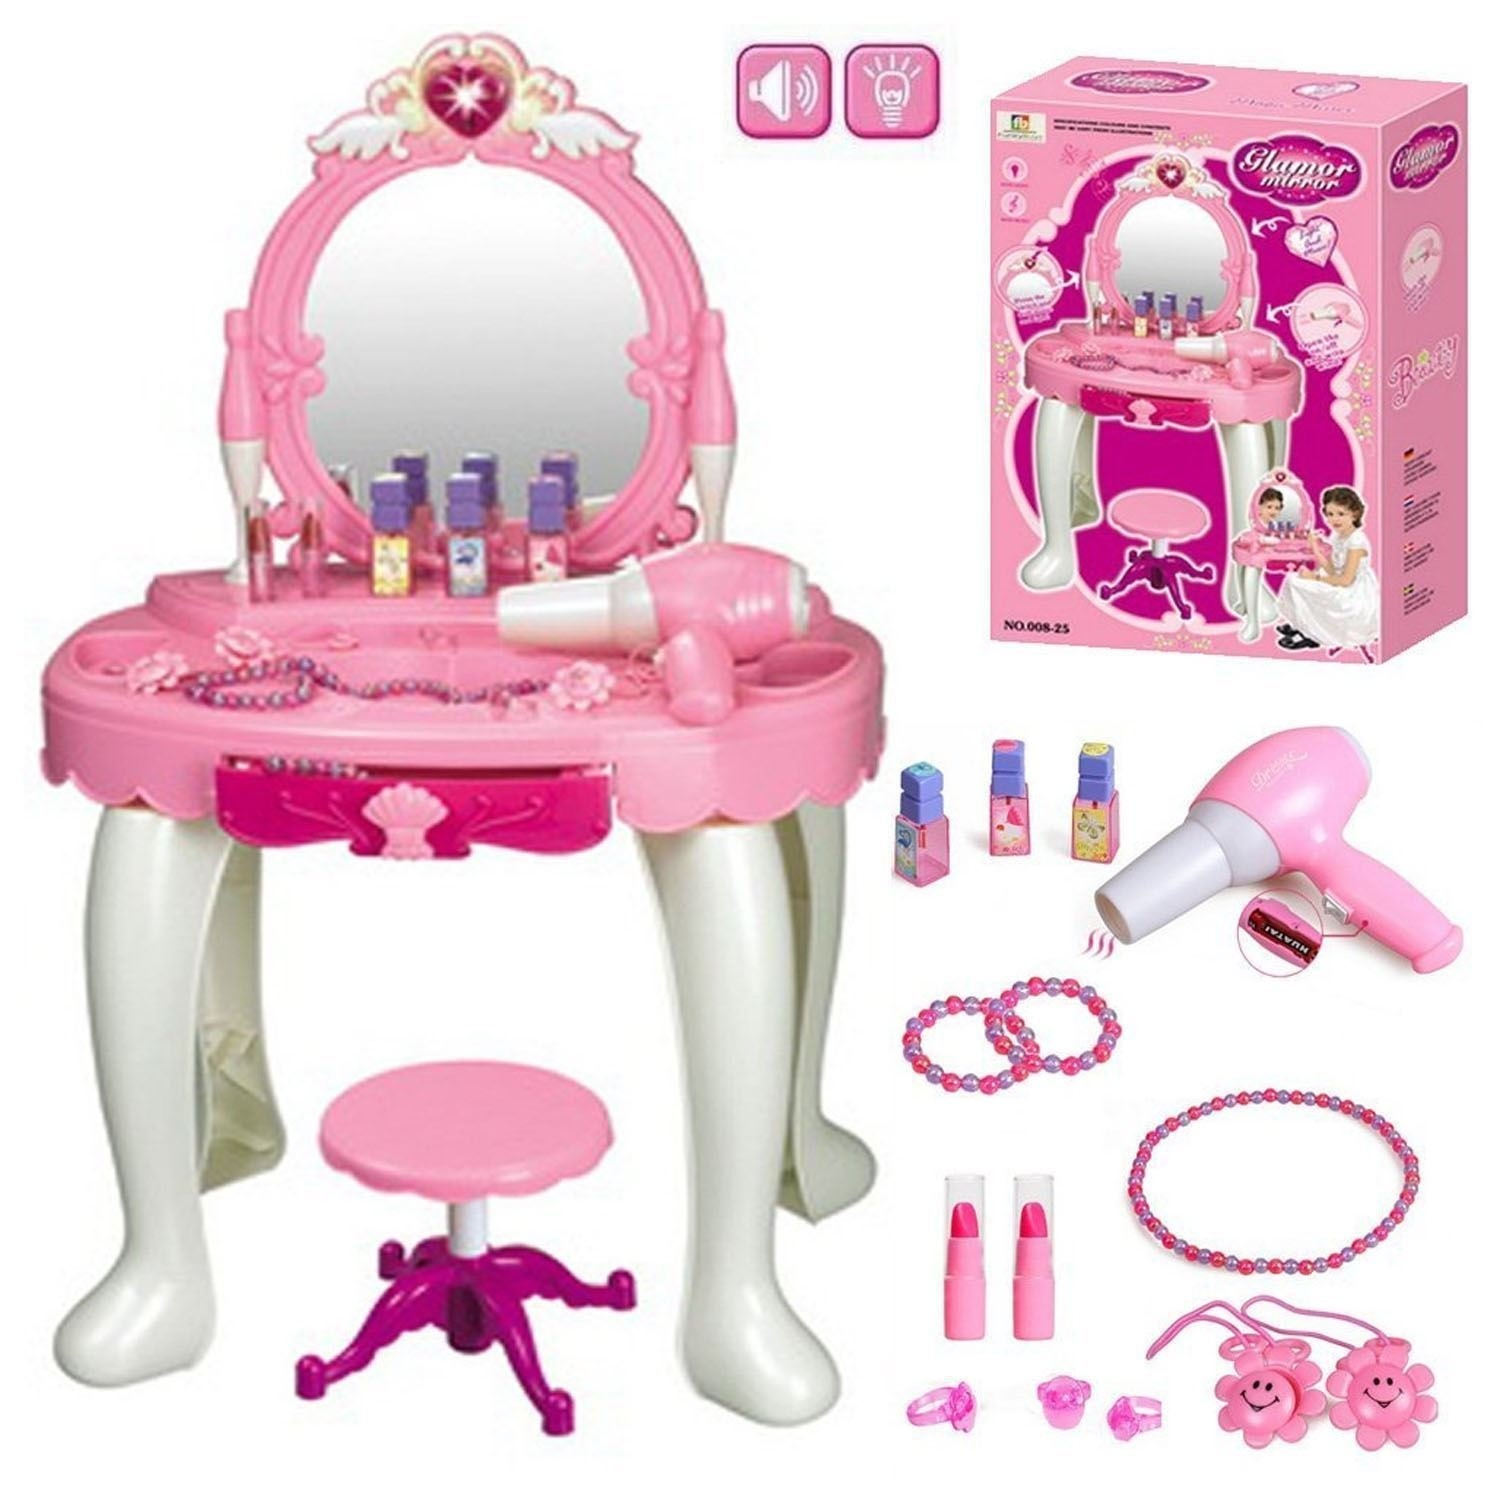 Girls Dressing Table Kids Girls Dressing Table Mirror Play Set Glamour Beauty Makeup Game Toy